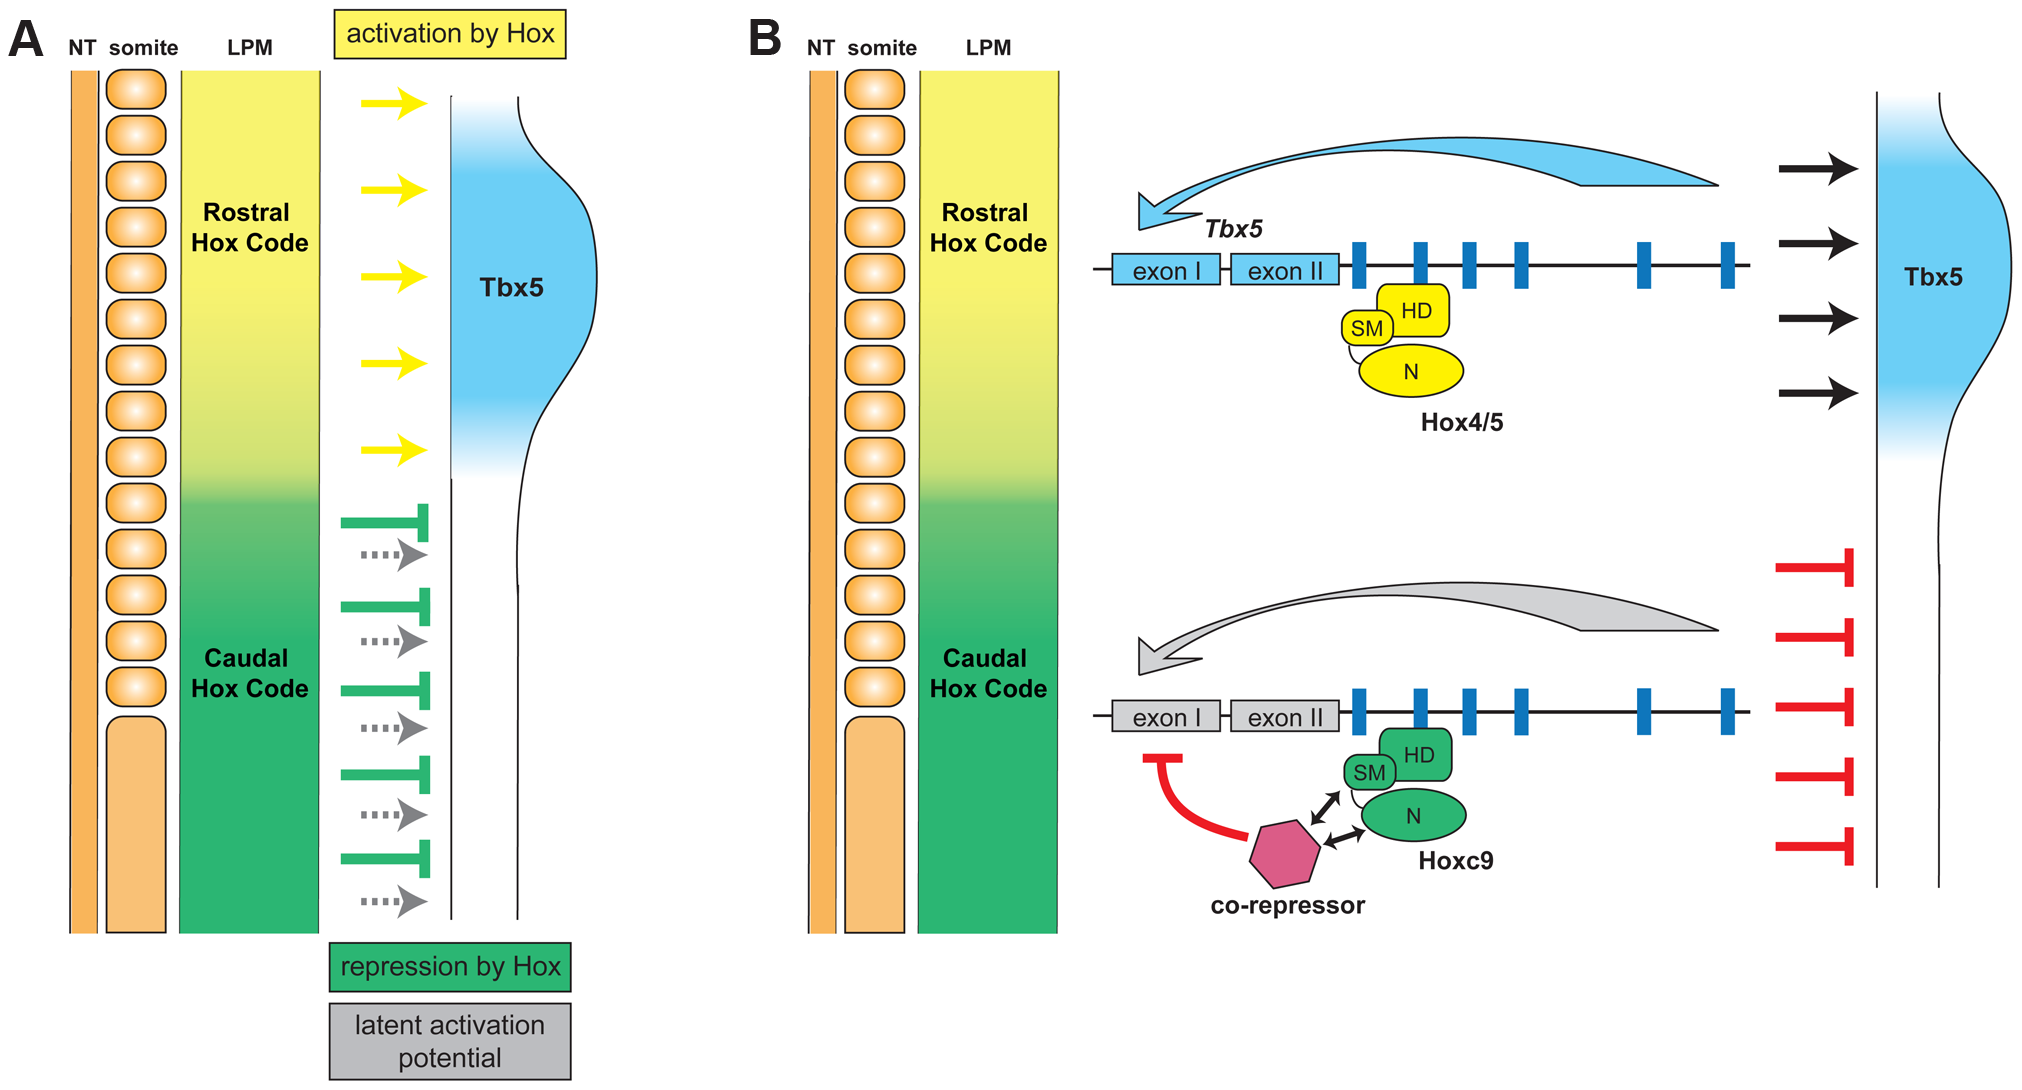 Model for the combinatorial regulation of forelimb-restricted <i>Tbx5</i> expression by distinct paralogous Hox gene inputs.